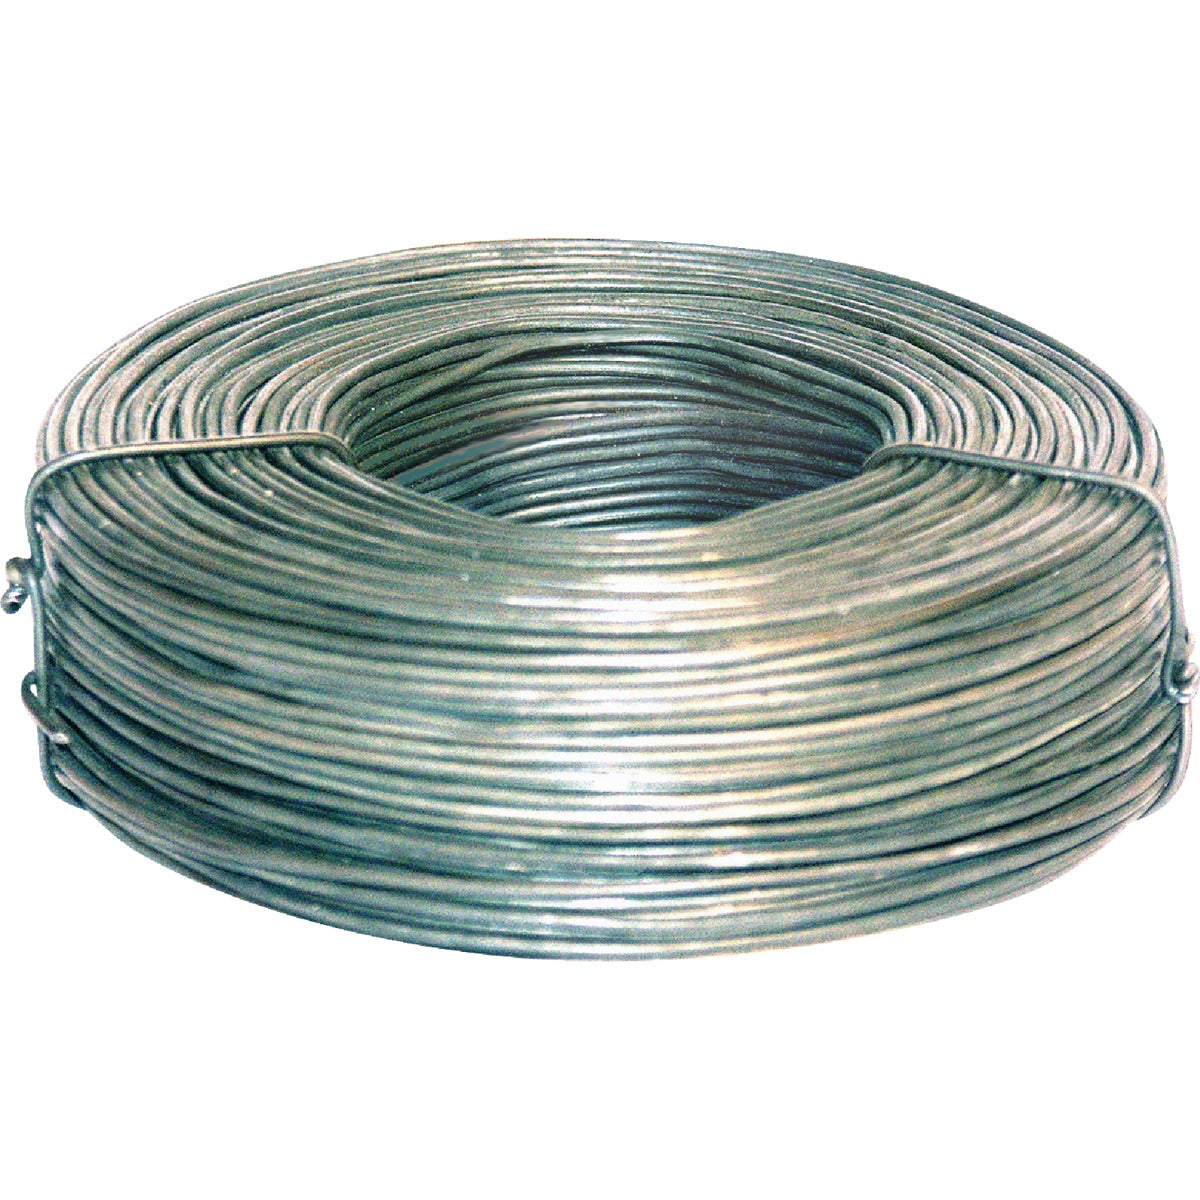 12GA 100#GLV SMOOTH WIRE - SWG12100 by Primesource